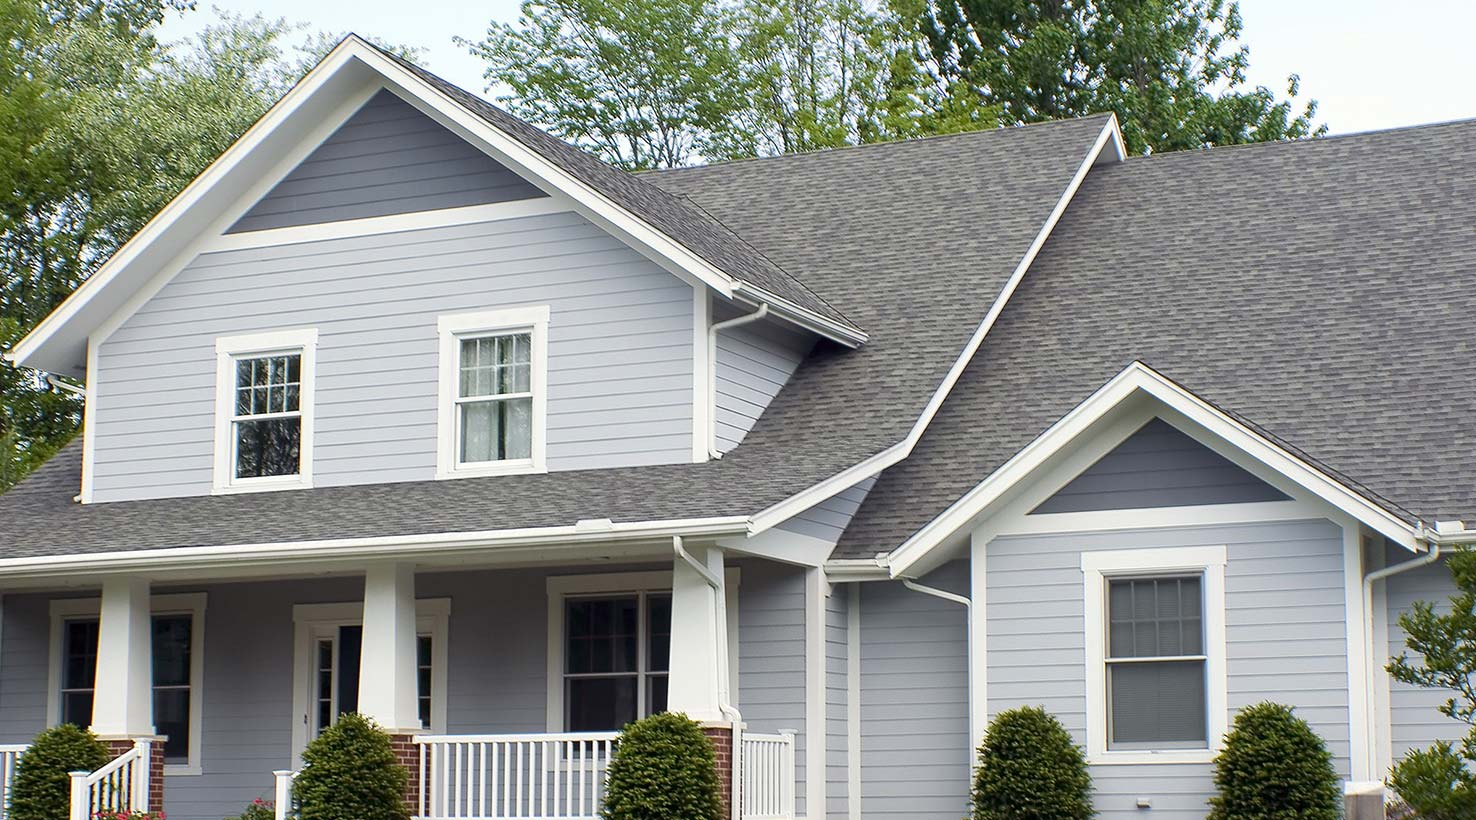 Exterior house color inspiration sherwin williams for Exterior home colors